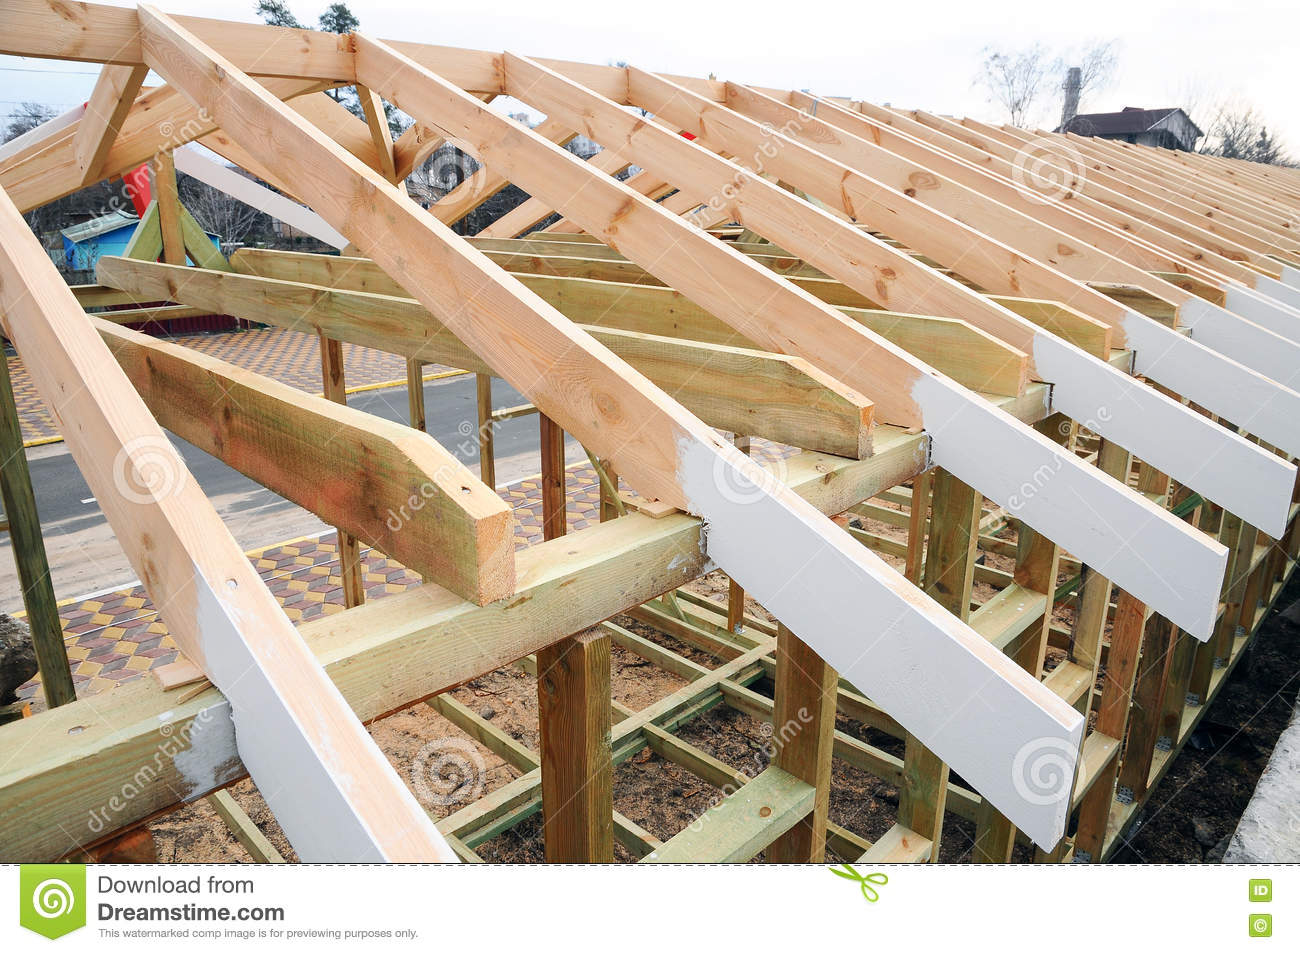 Roof frame roof framing 101 sc 1 st extreme how to for House framing 101